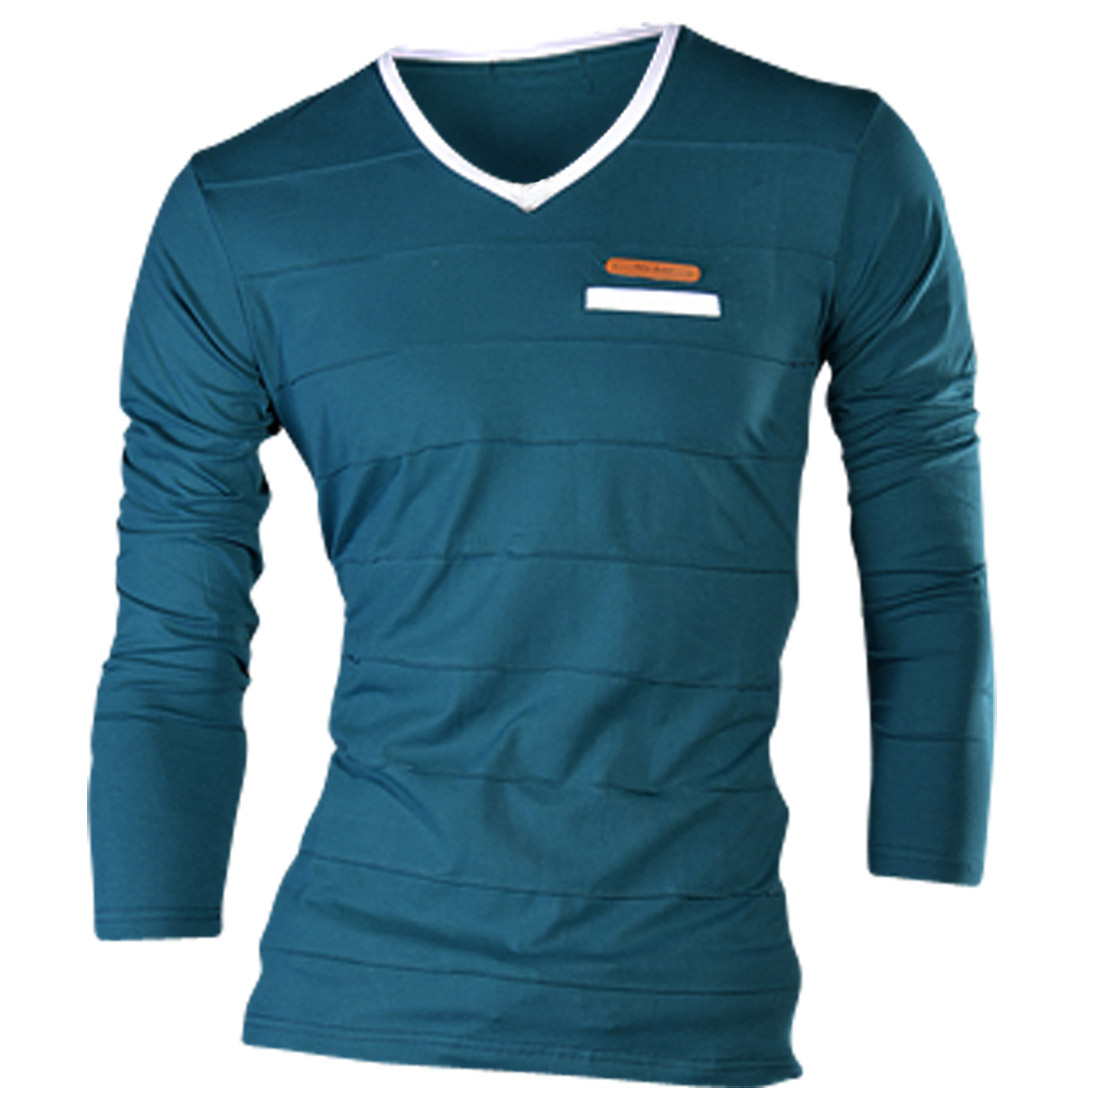 Men Shirred Design Long Sleeved Casual Turquoise Shirt S